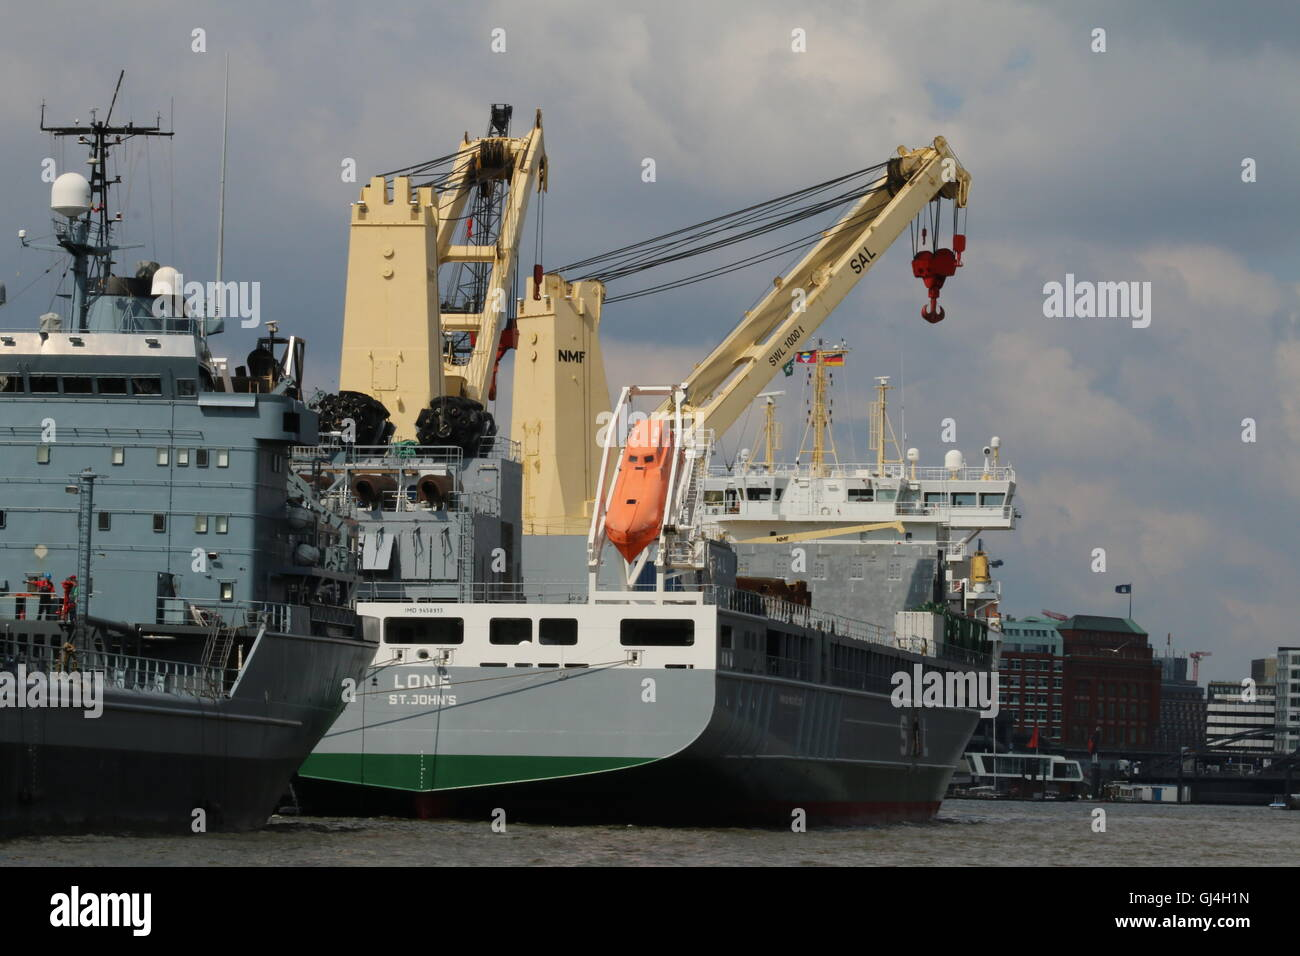 12,975 dwt Heavy lift ship Lone owned by SAL Shipping docked in Hamburg, Germany - Stock Image